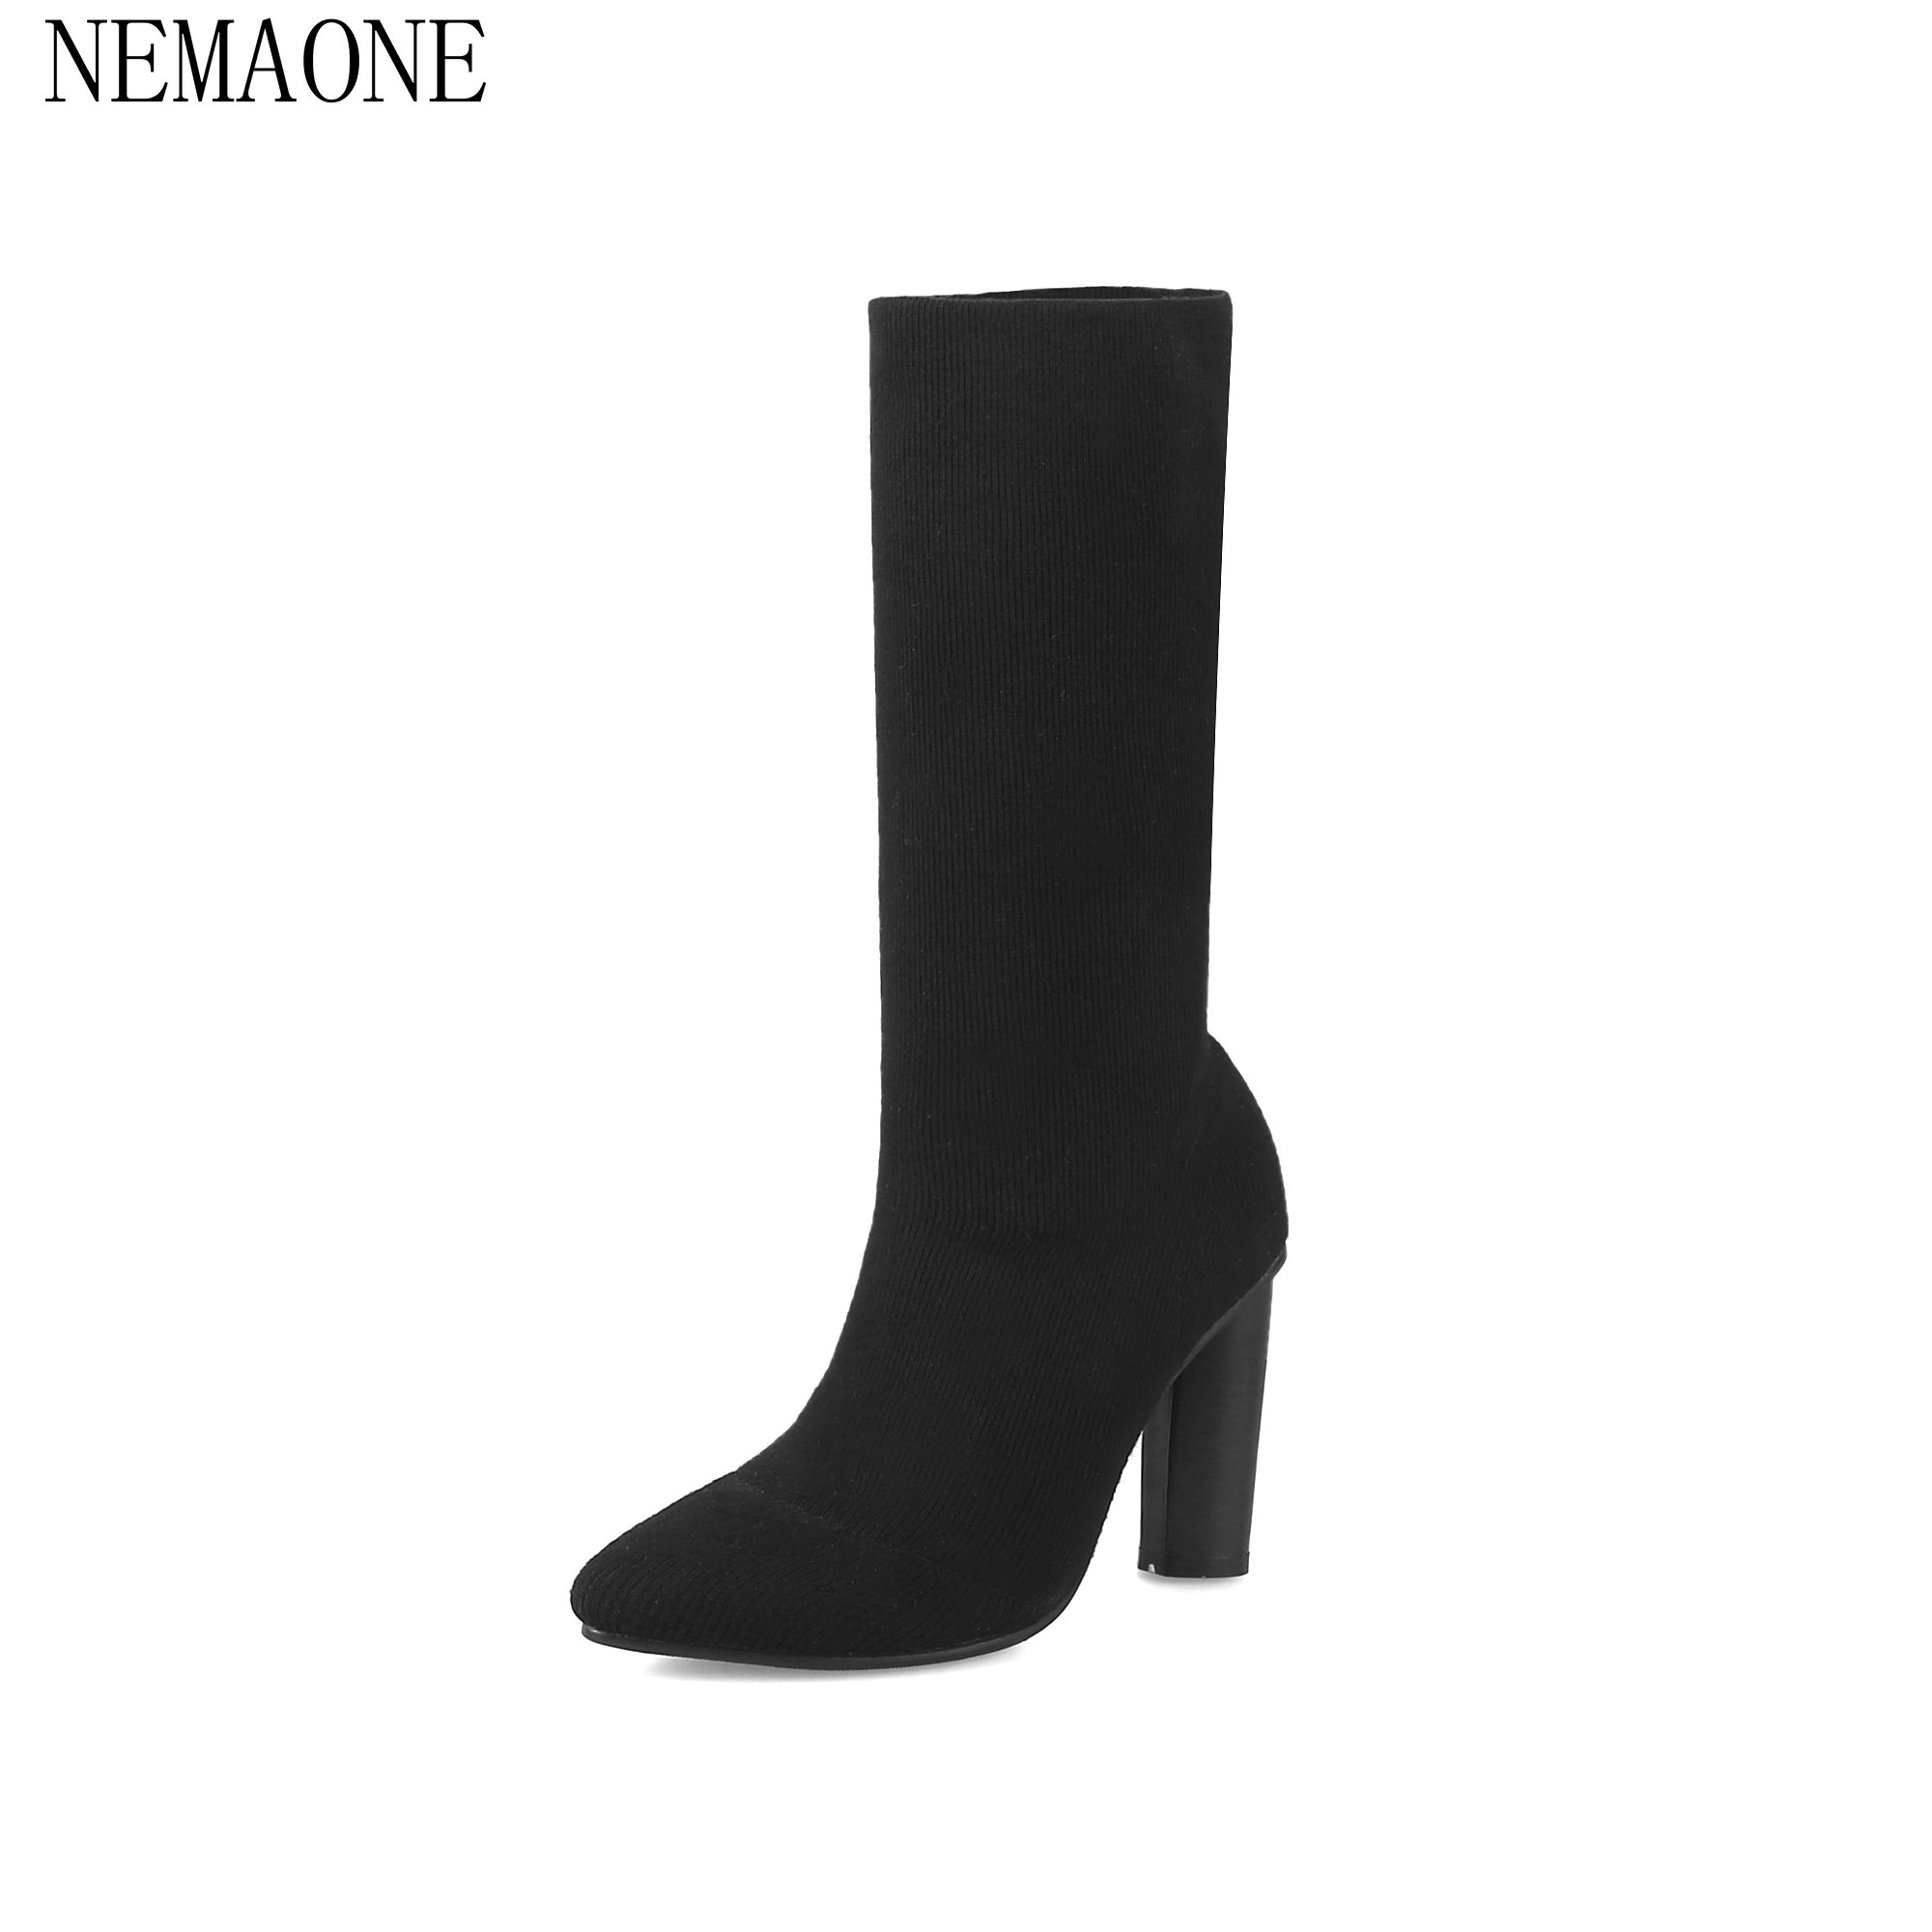 NEMAONE 2018 Women Autumn Mid calf Boots Stretch Elegant Woman Sexy round  toe Mid calf Boots Sexy Ladies High Heel 9cm double buckle cross straps mid calf boots